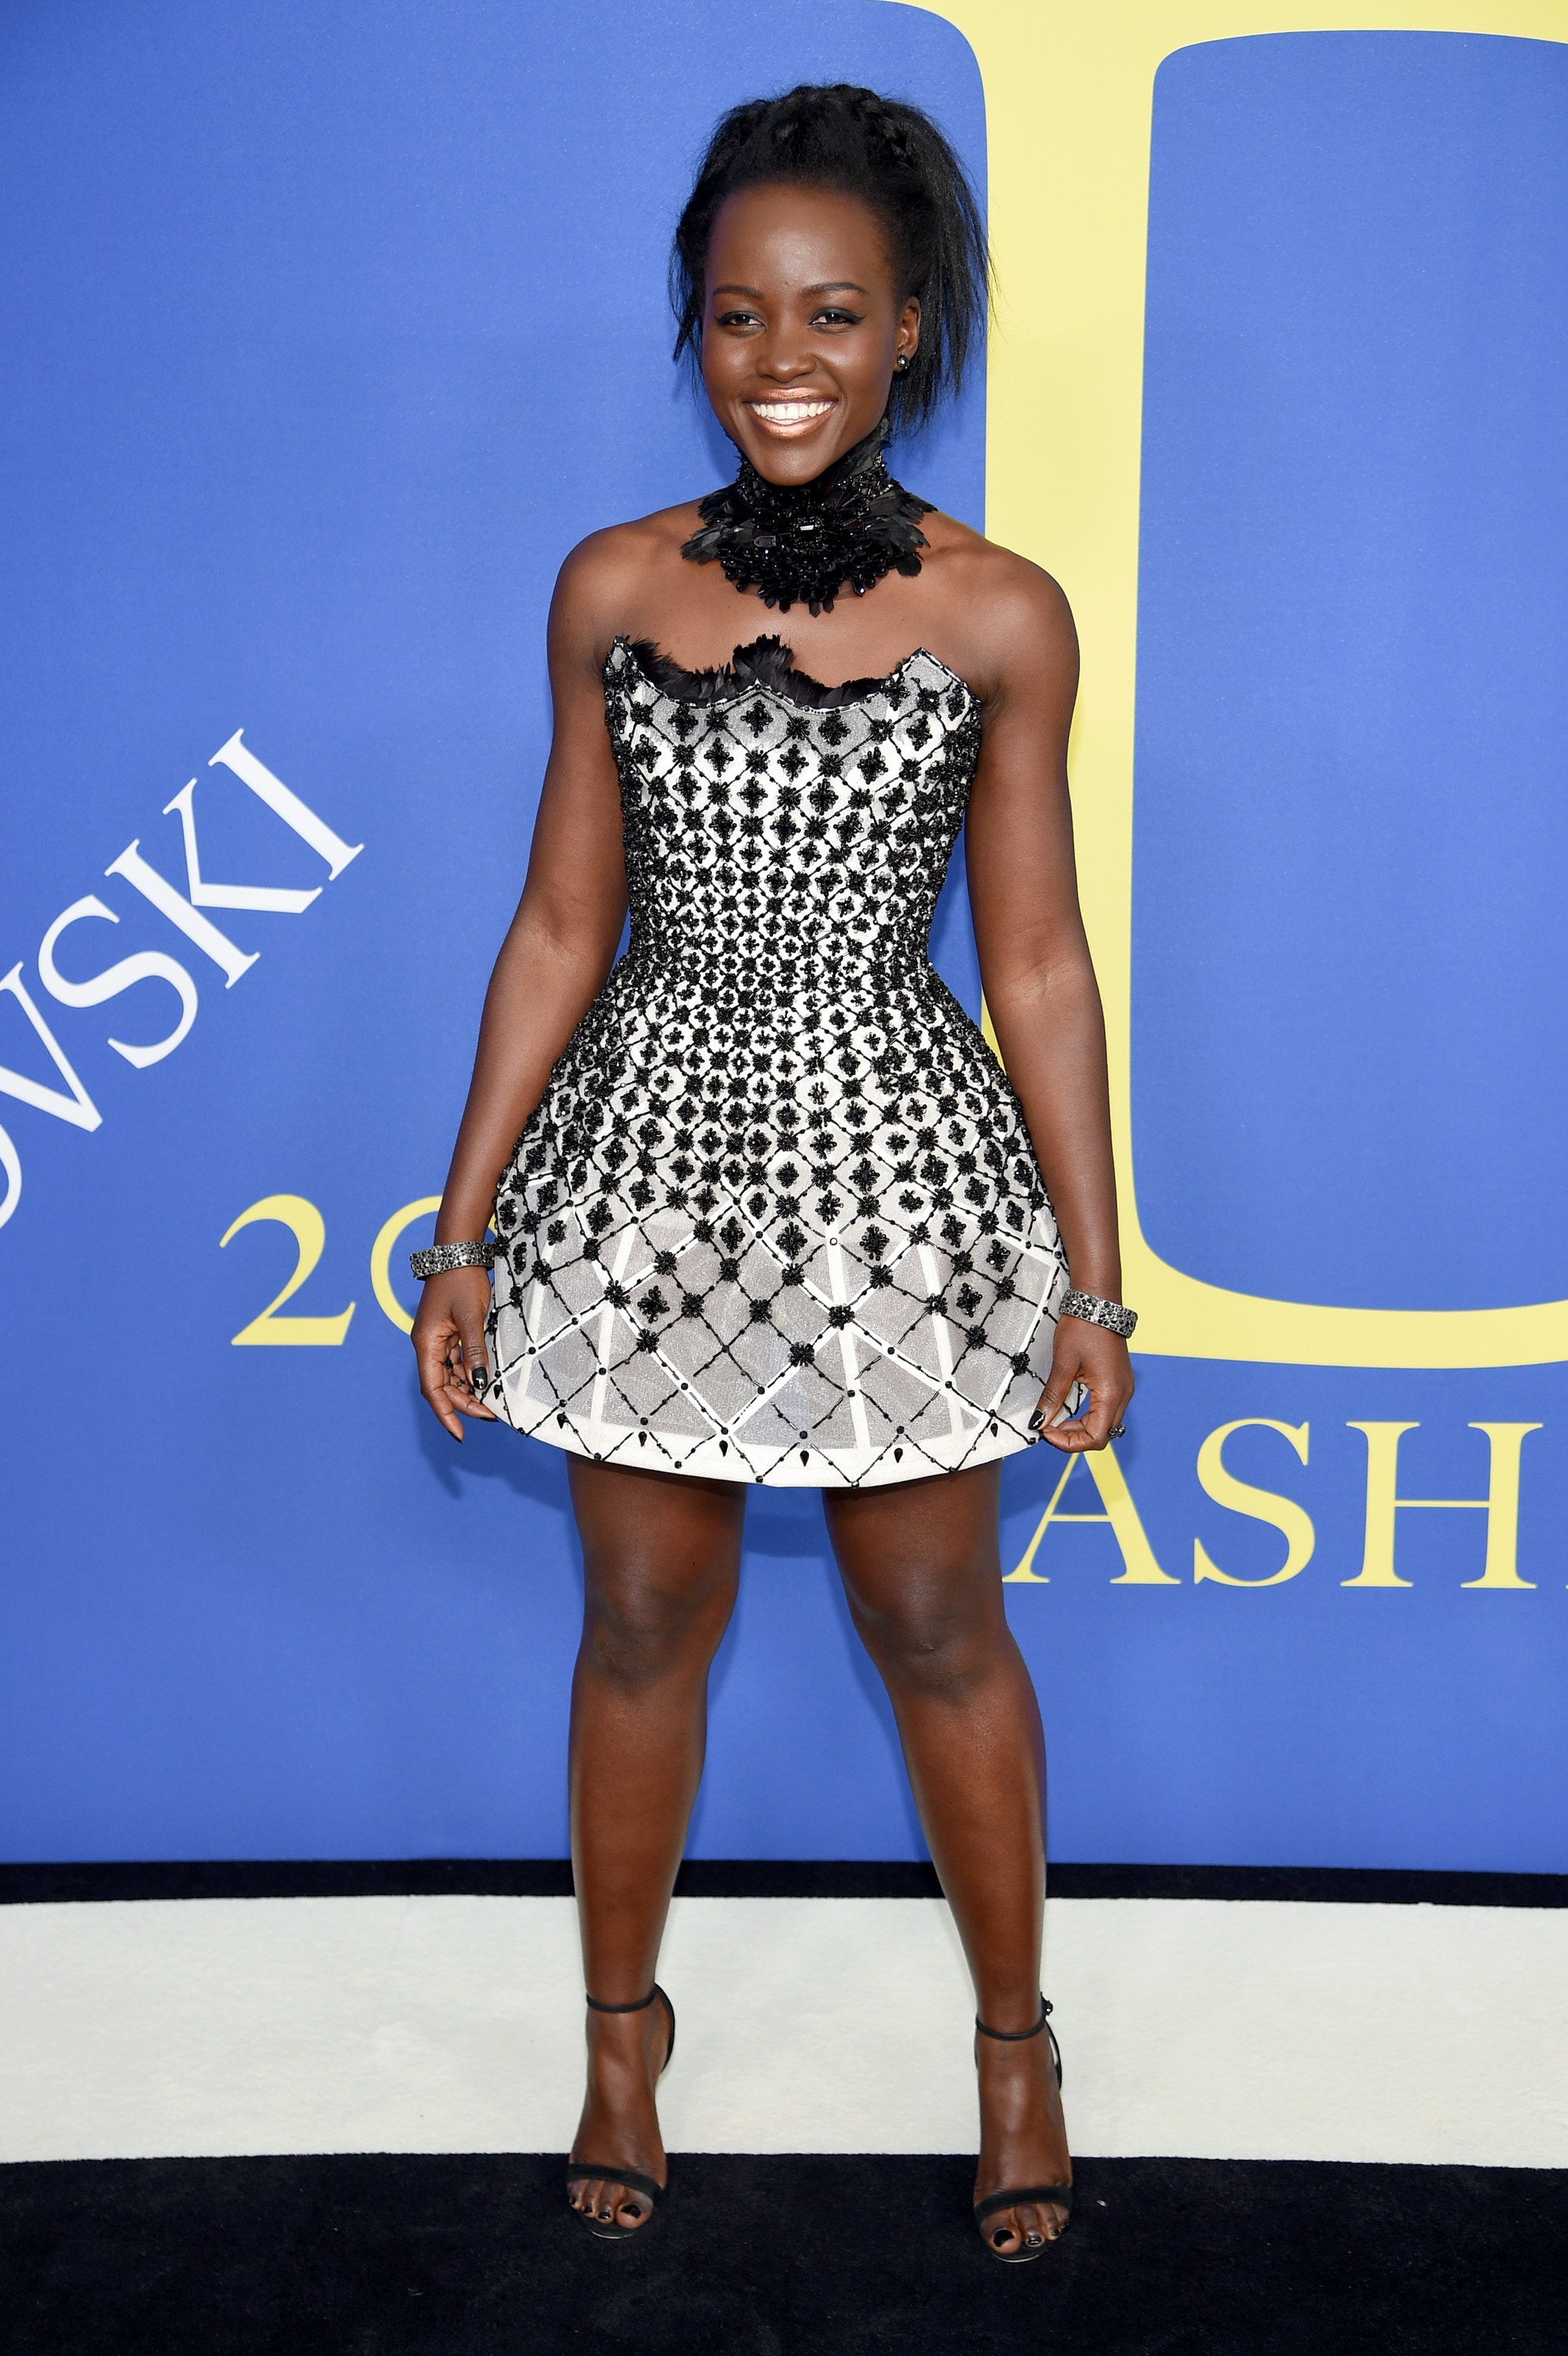 NEW YORK, NY - JUNE 04: Lupita Nyong'o attends the 2018 CFDA Fashion Awards at Brooklyn Museum on June 4, 2018 in New York City. (Photo by Dimitrios Kambouris/Getty Images)